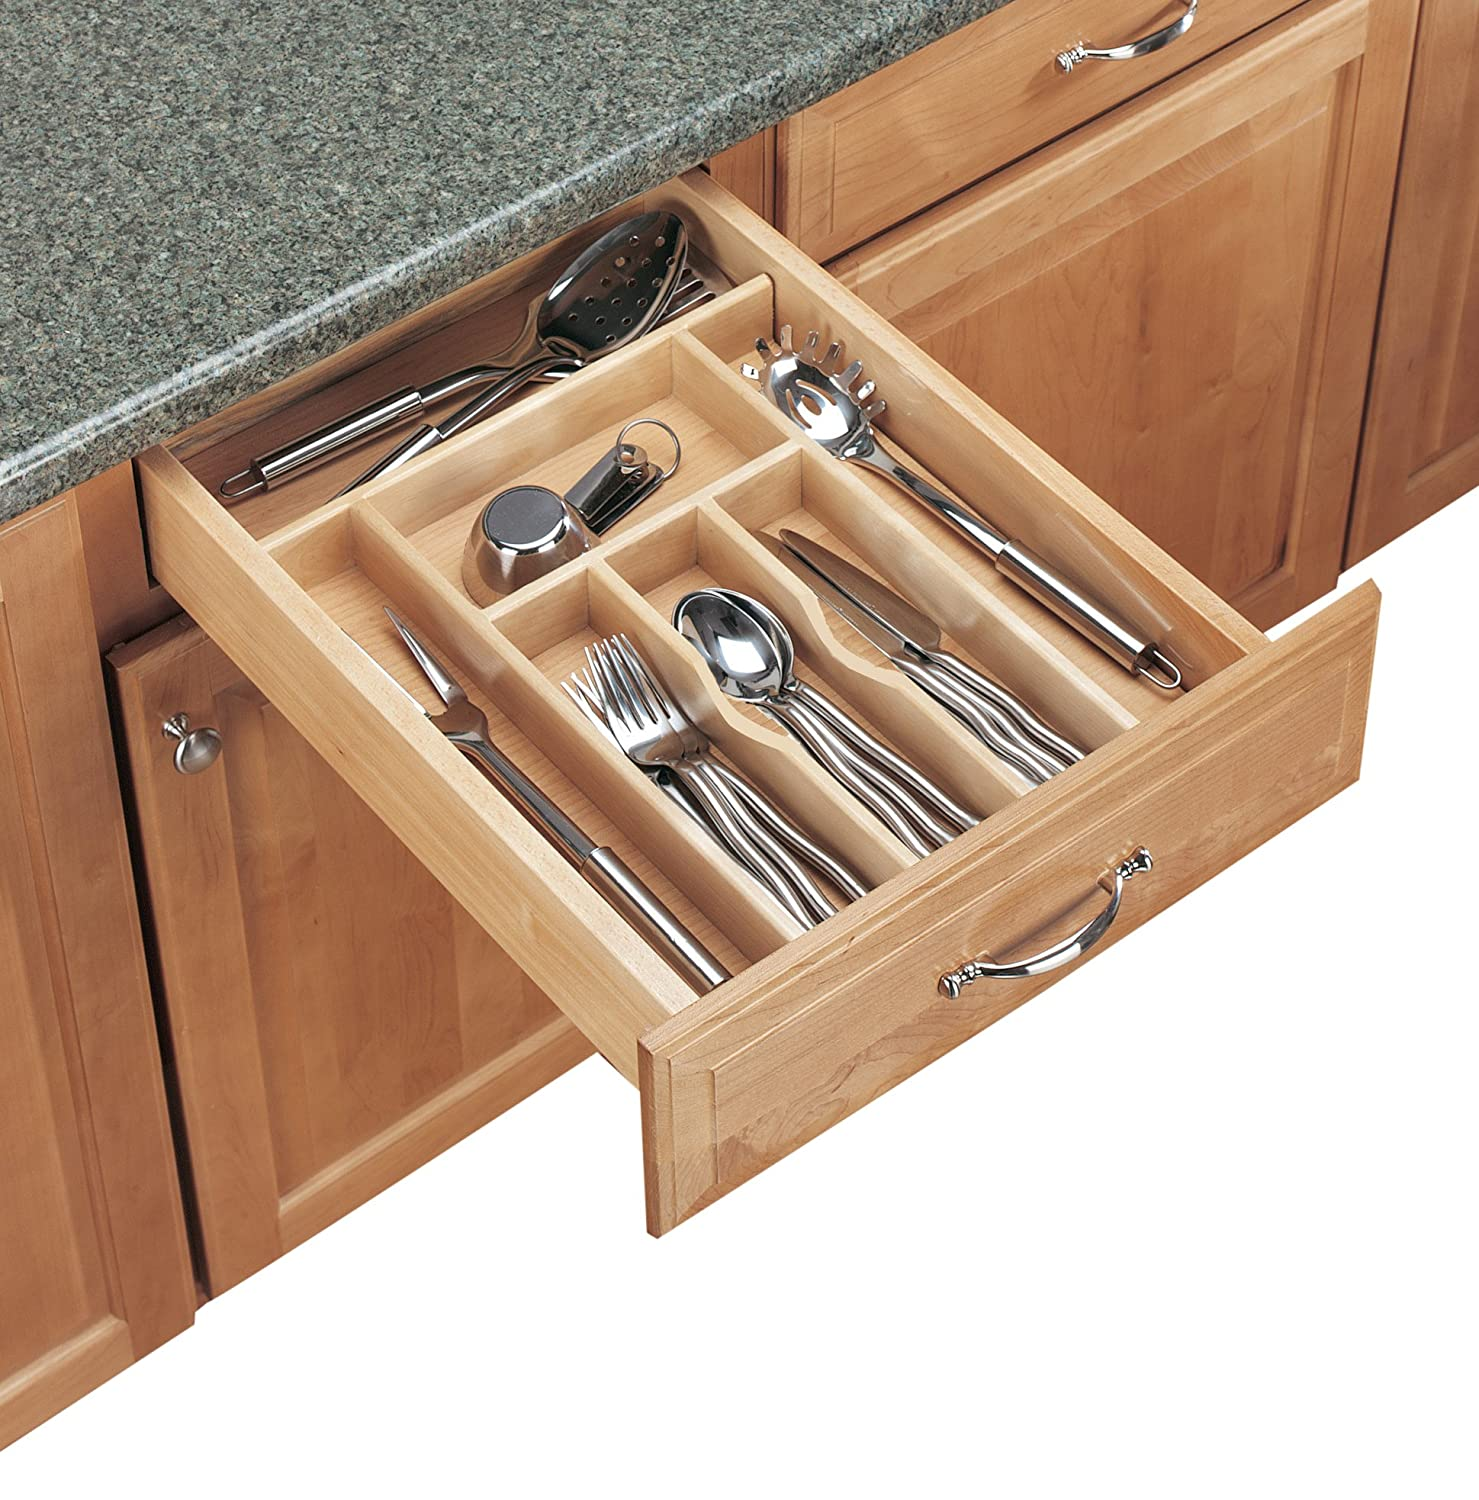 Kitchen Utensil Organizer Drawer Amazon rev a shelf cutlery trim 2 78 x 20 58in wood cutlery amazon rev a shelf cutlery trim 2 78 x 20 58in wood cutlery trays kitchen dining workwithnaturefo